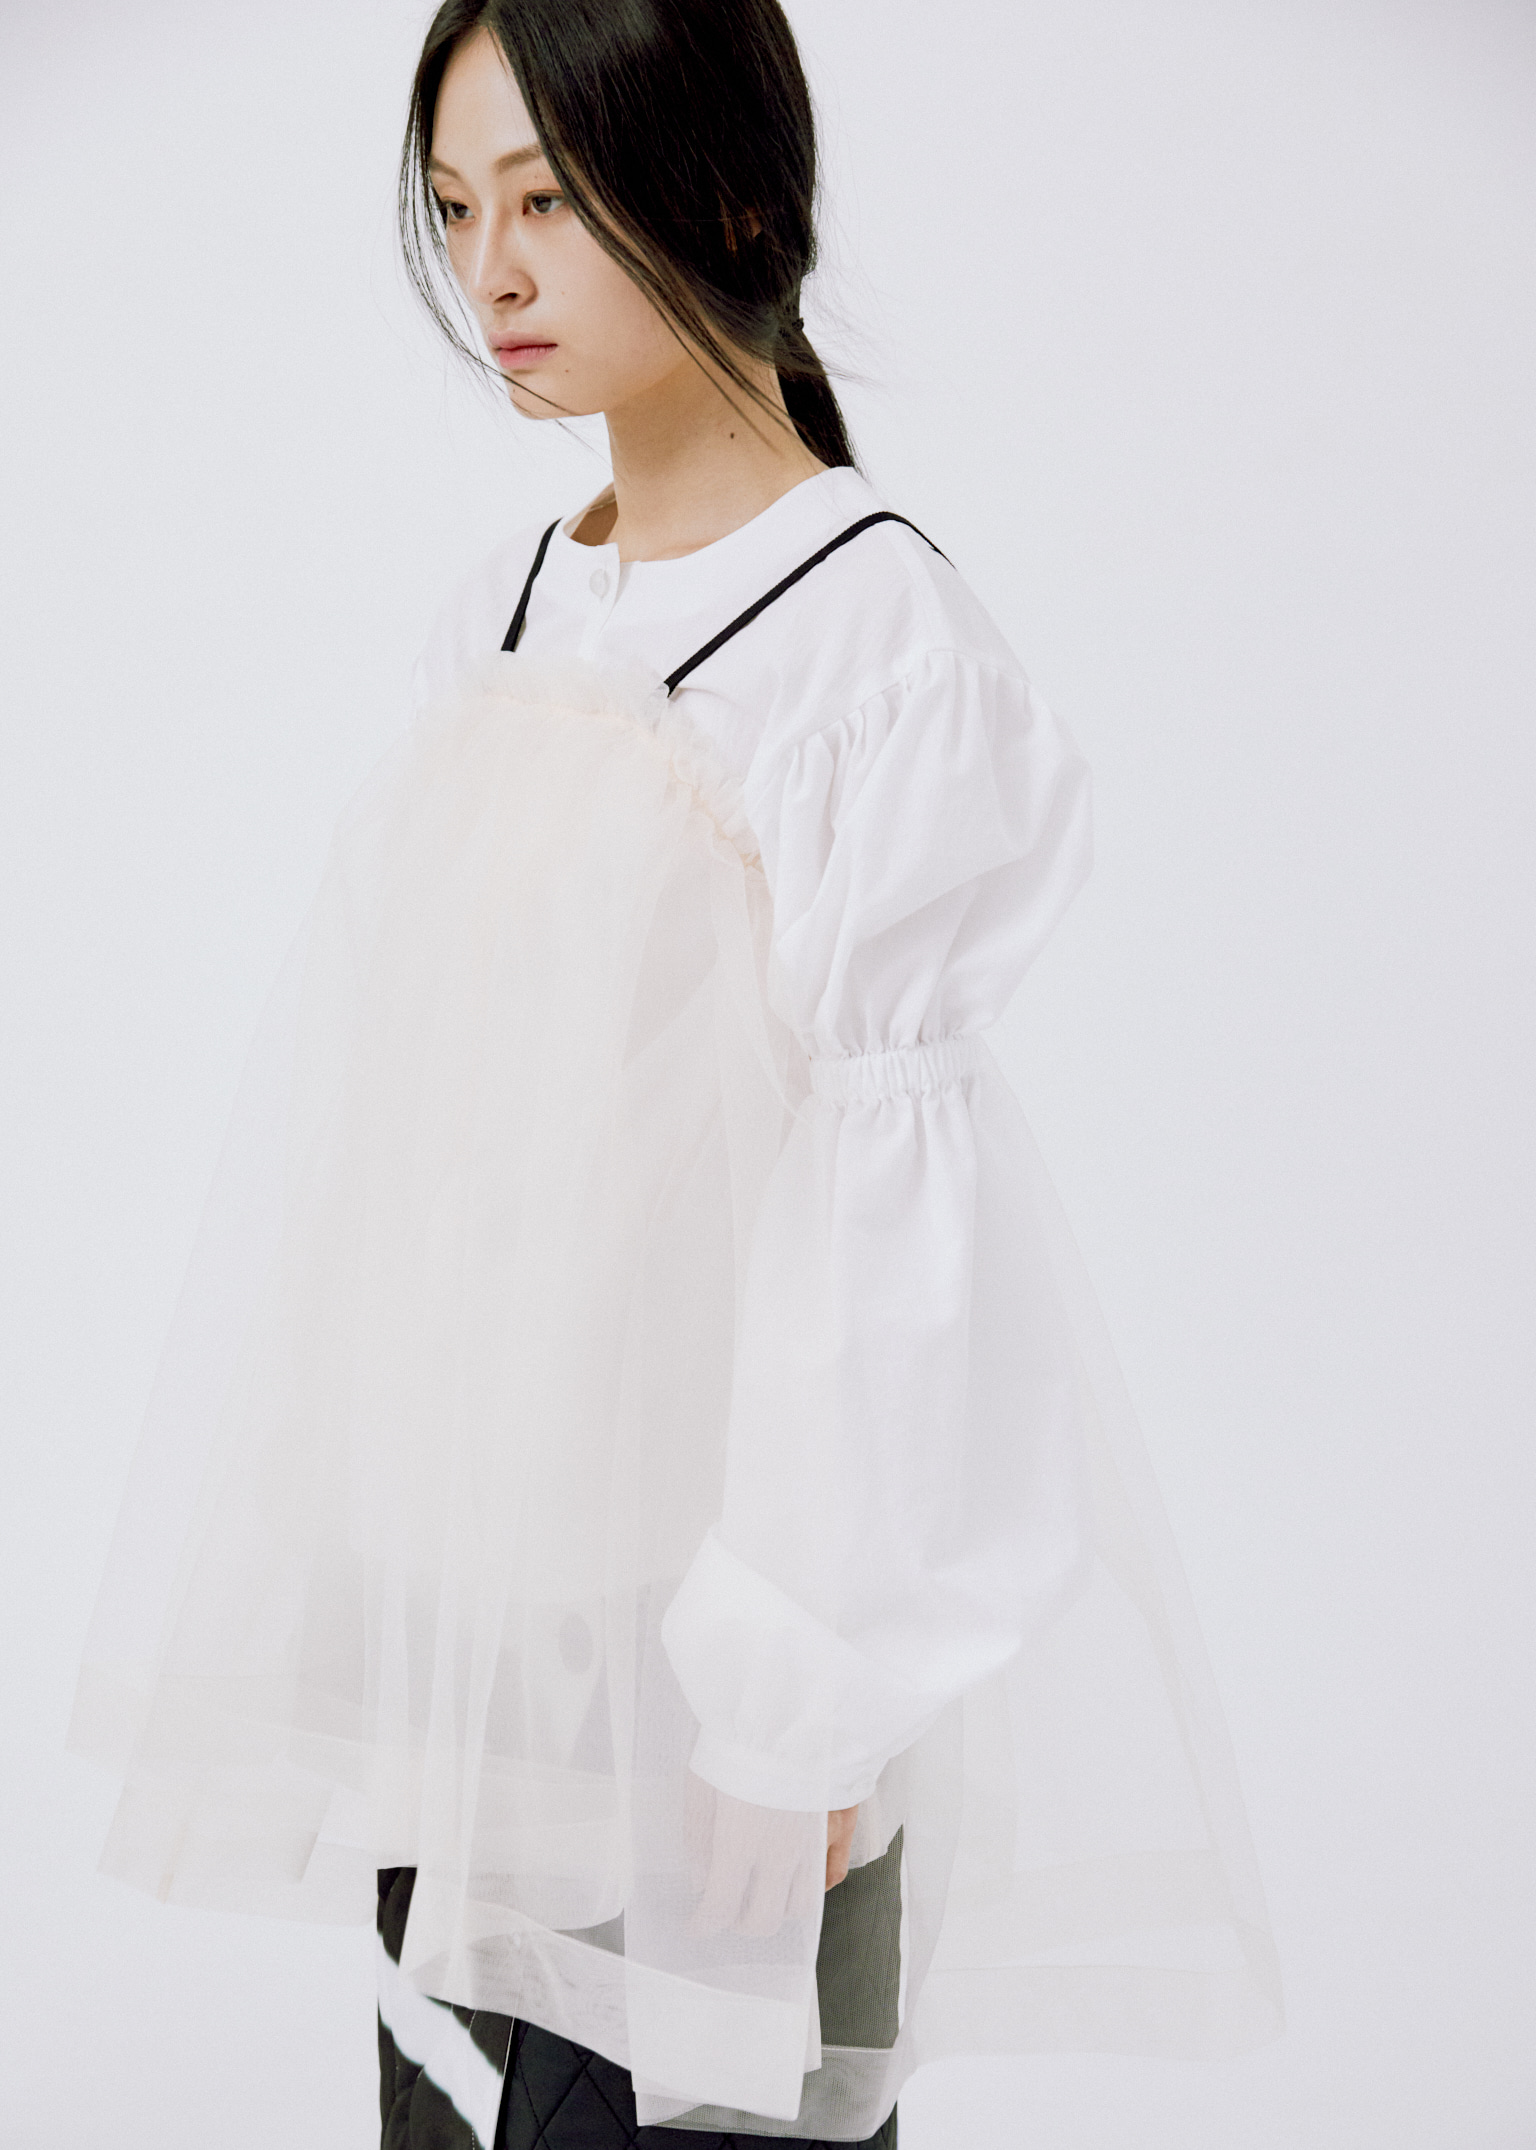 TWO VOLUME SLEEVE SHIRT